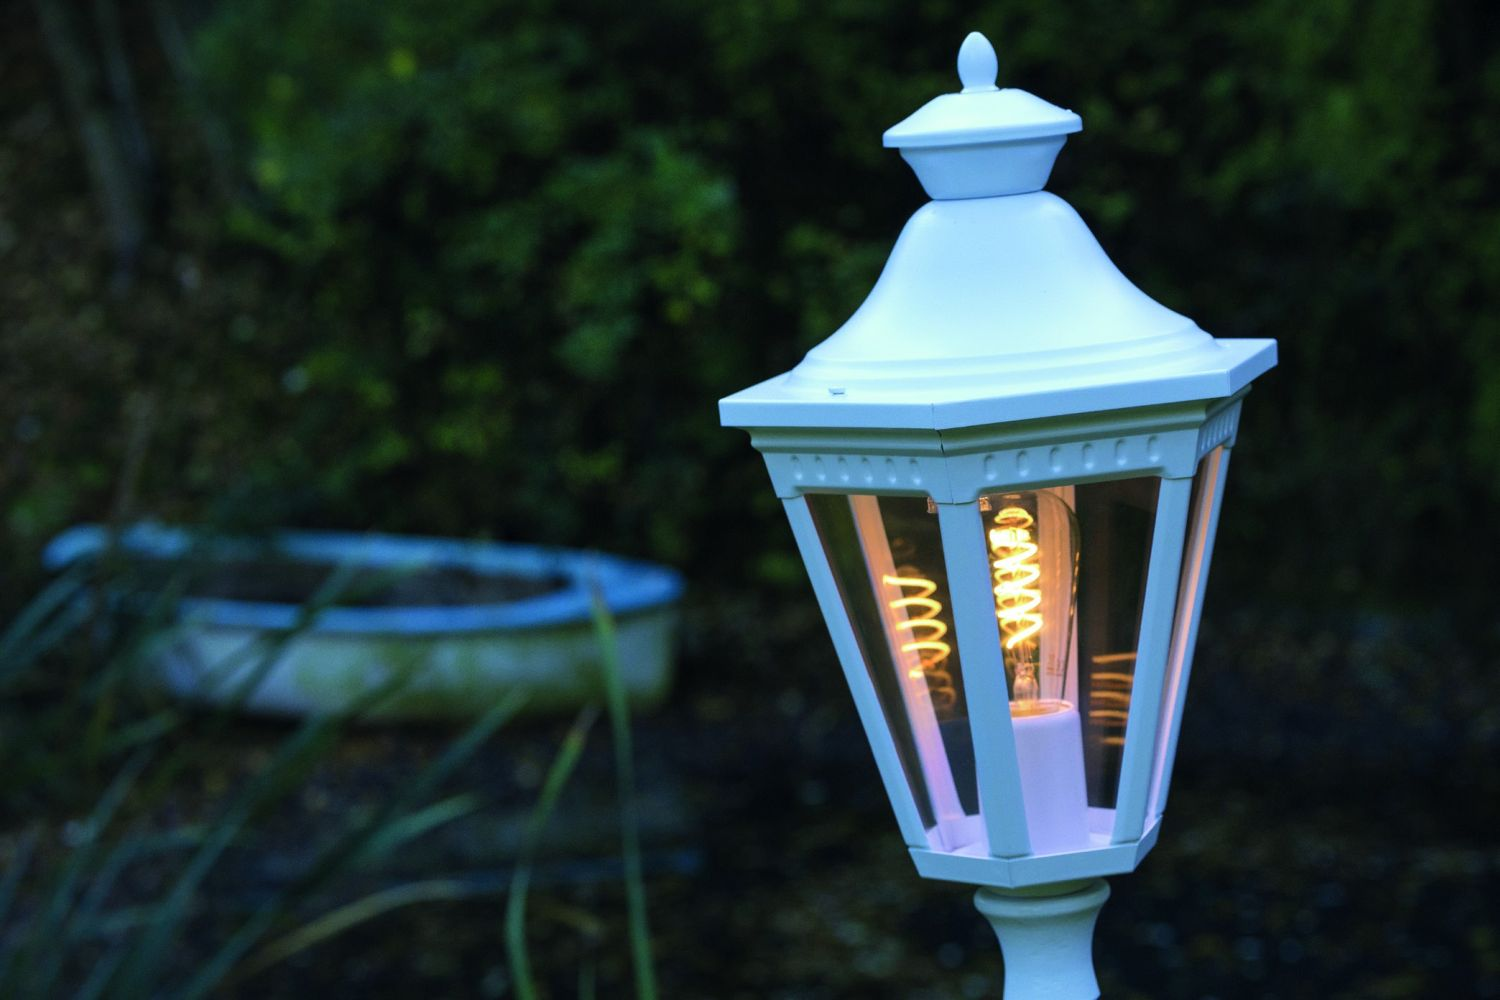 Artisan Roger Pradier - Victoria - Lighting Appliances - Outdoor